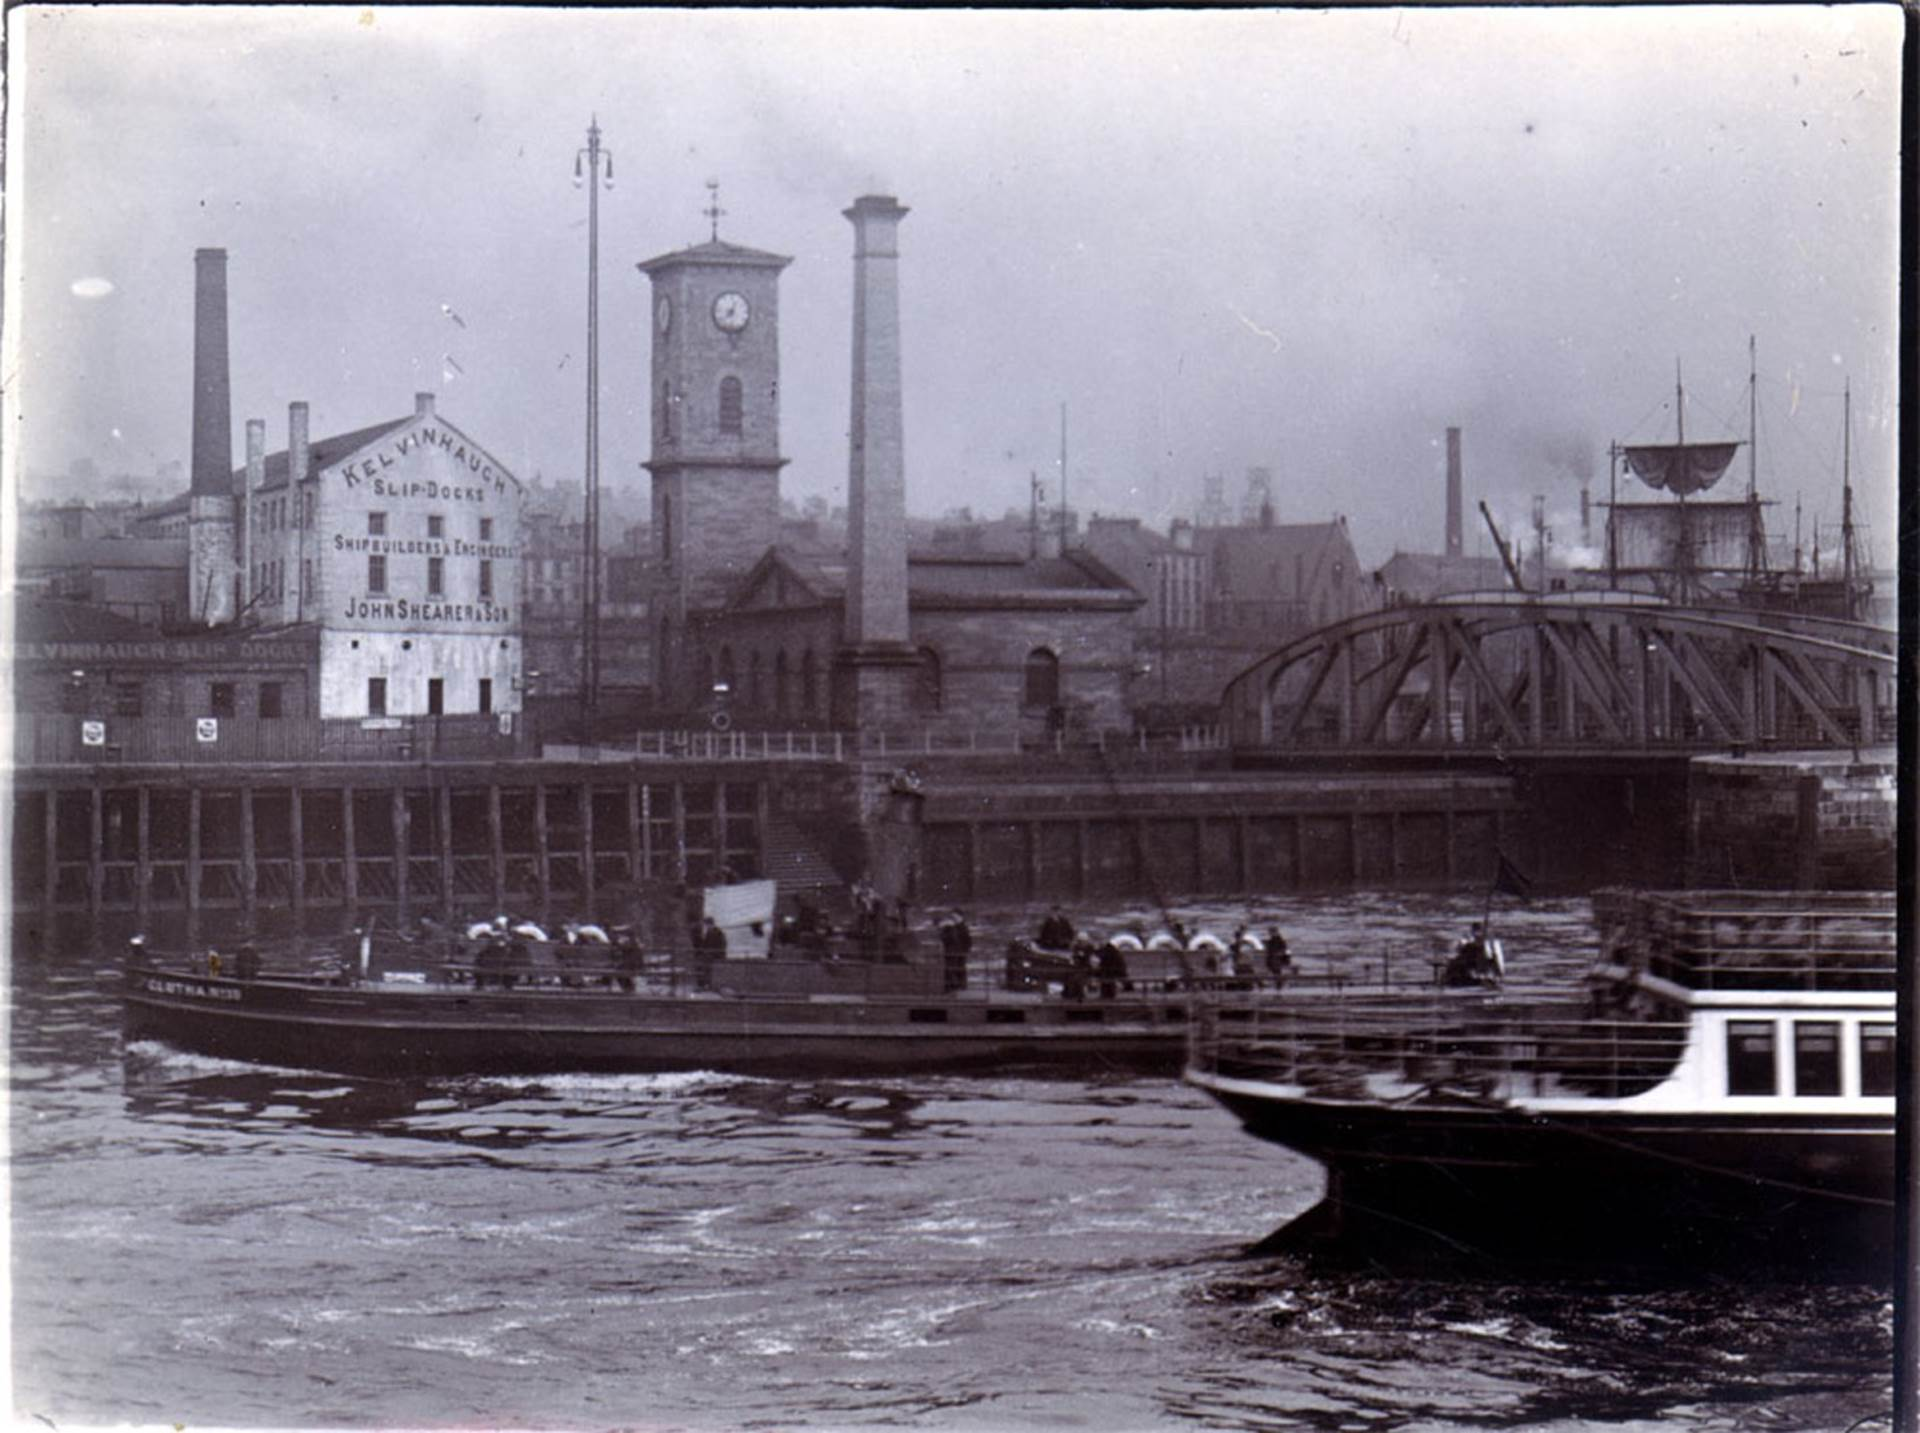 20th century Clutha boats on the River Clyde passing the old Pumphouse building, which now houses the Clydeside Distillery